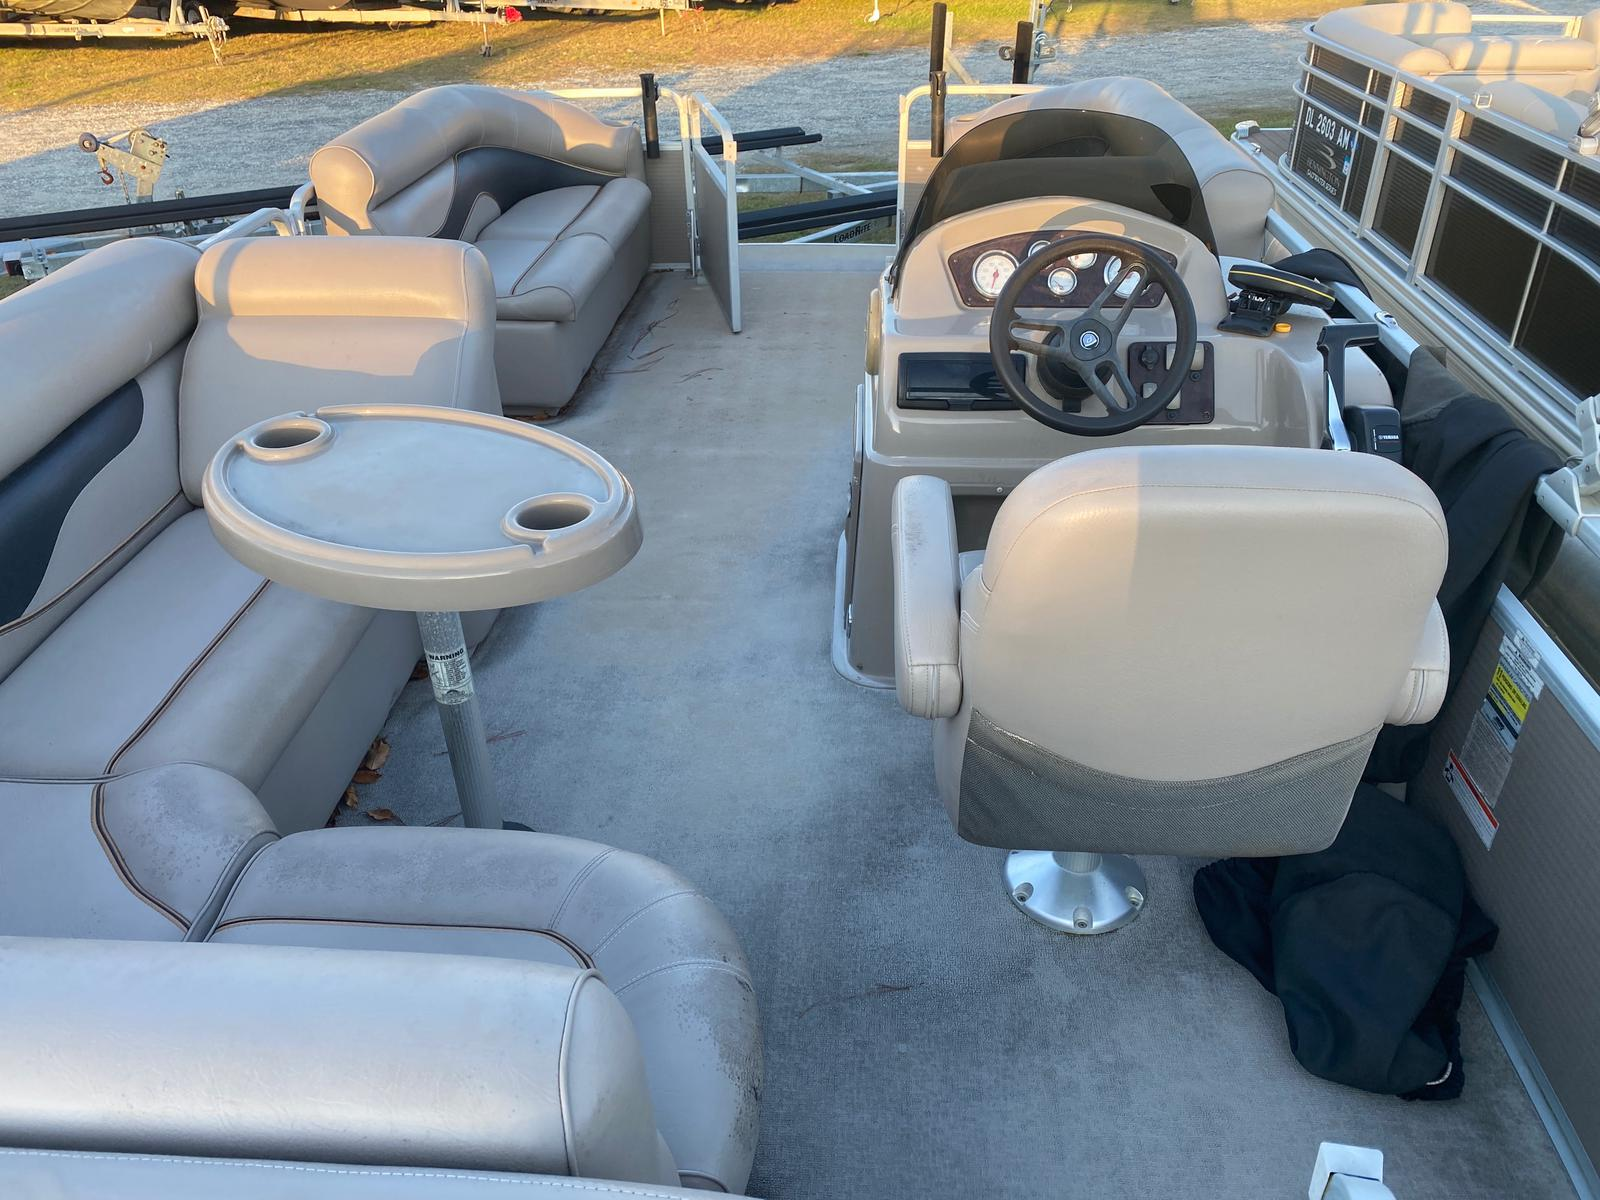 2009 Premier Pontoons boat for sale, model of the boat is Sunspree 200 Pontoon & Image # 3 of 13